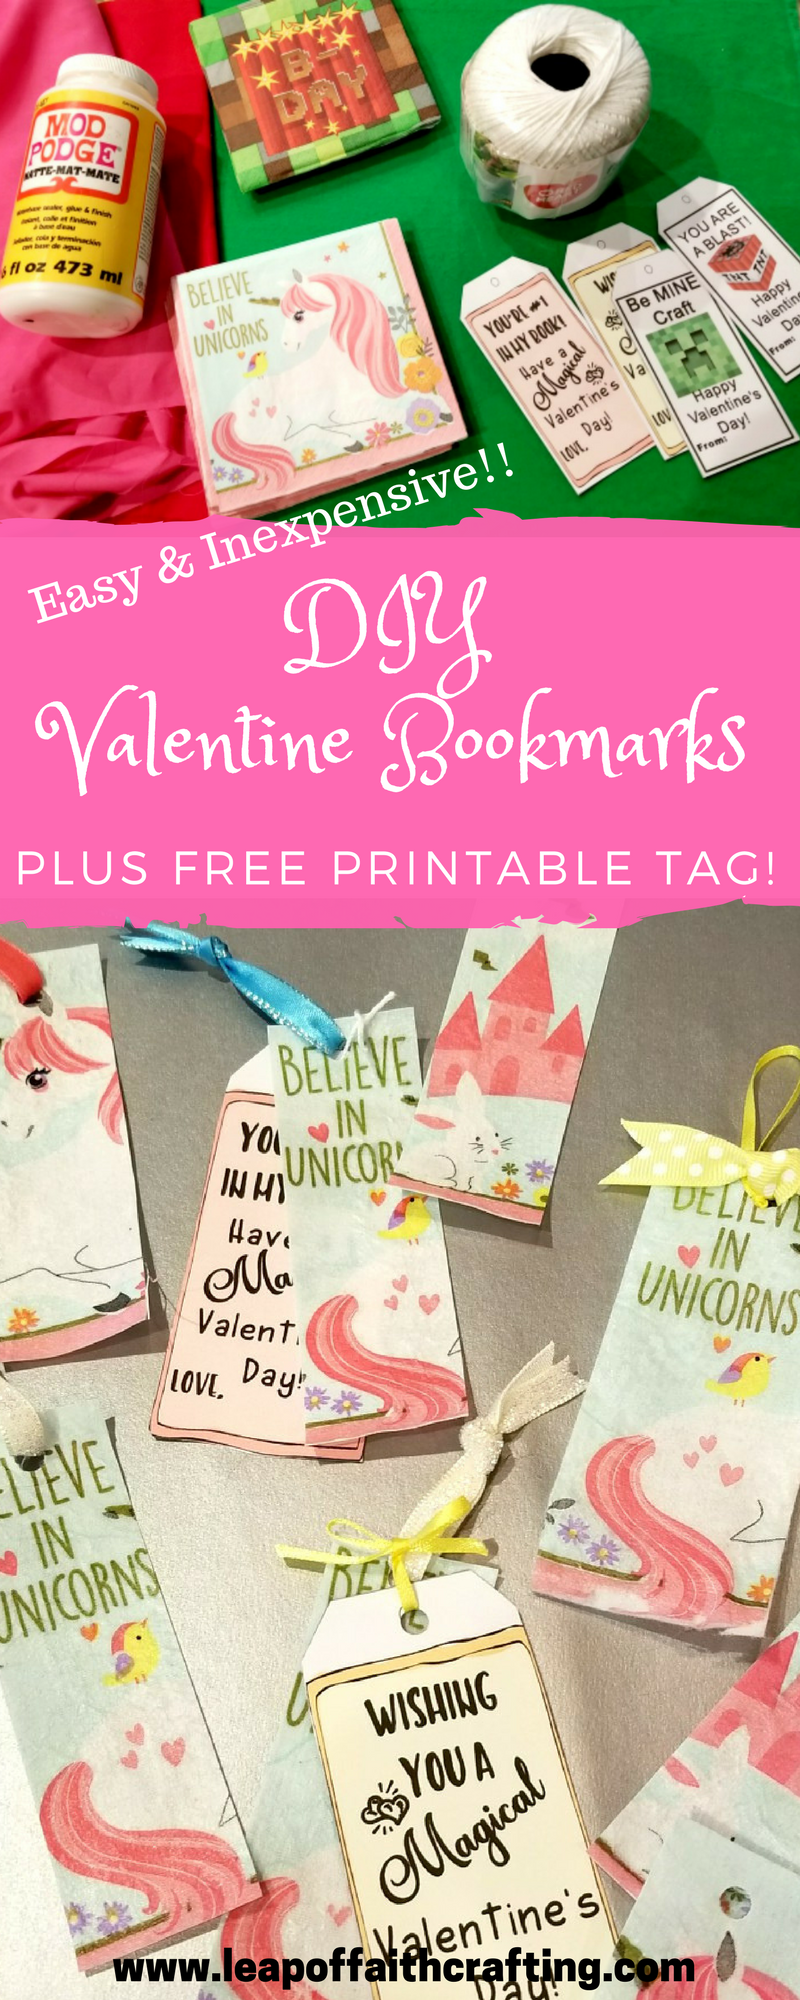 DIY Valentines for classmates